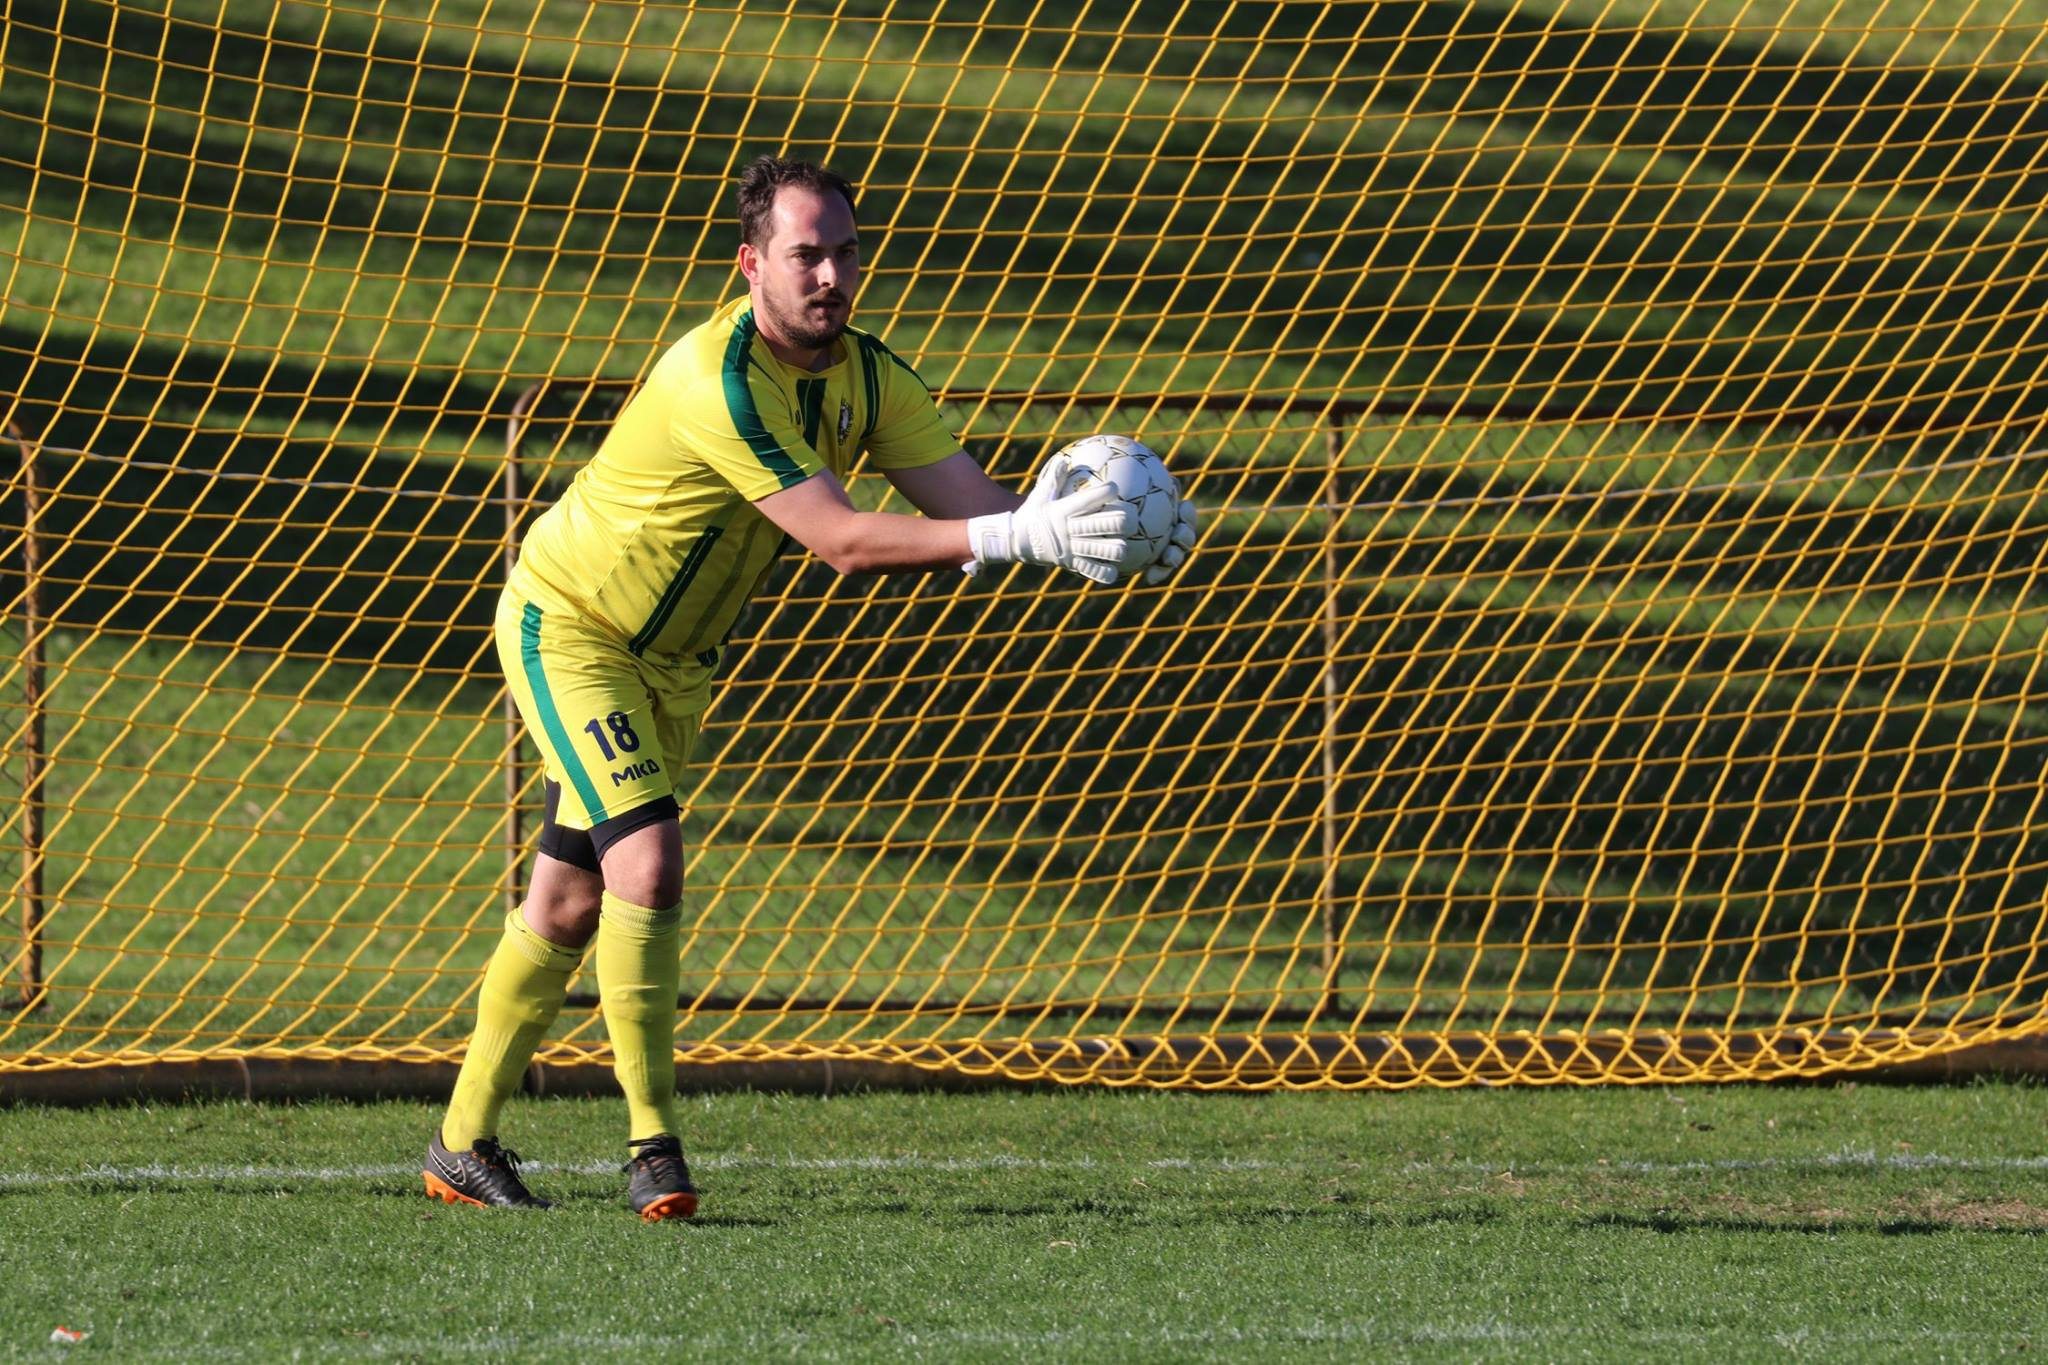 'KEEPER ALEX PREECE COLLECTS THE BALL AGAINST SOUTH WEST PHOENIX - CREDIT: GABRIELE MALUGA